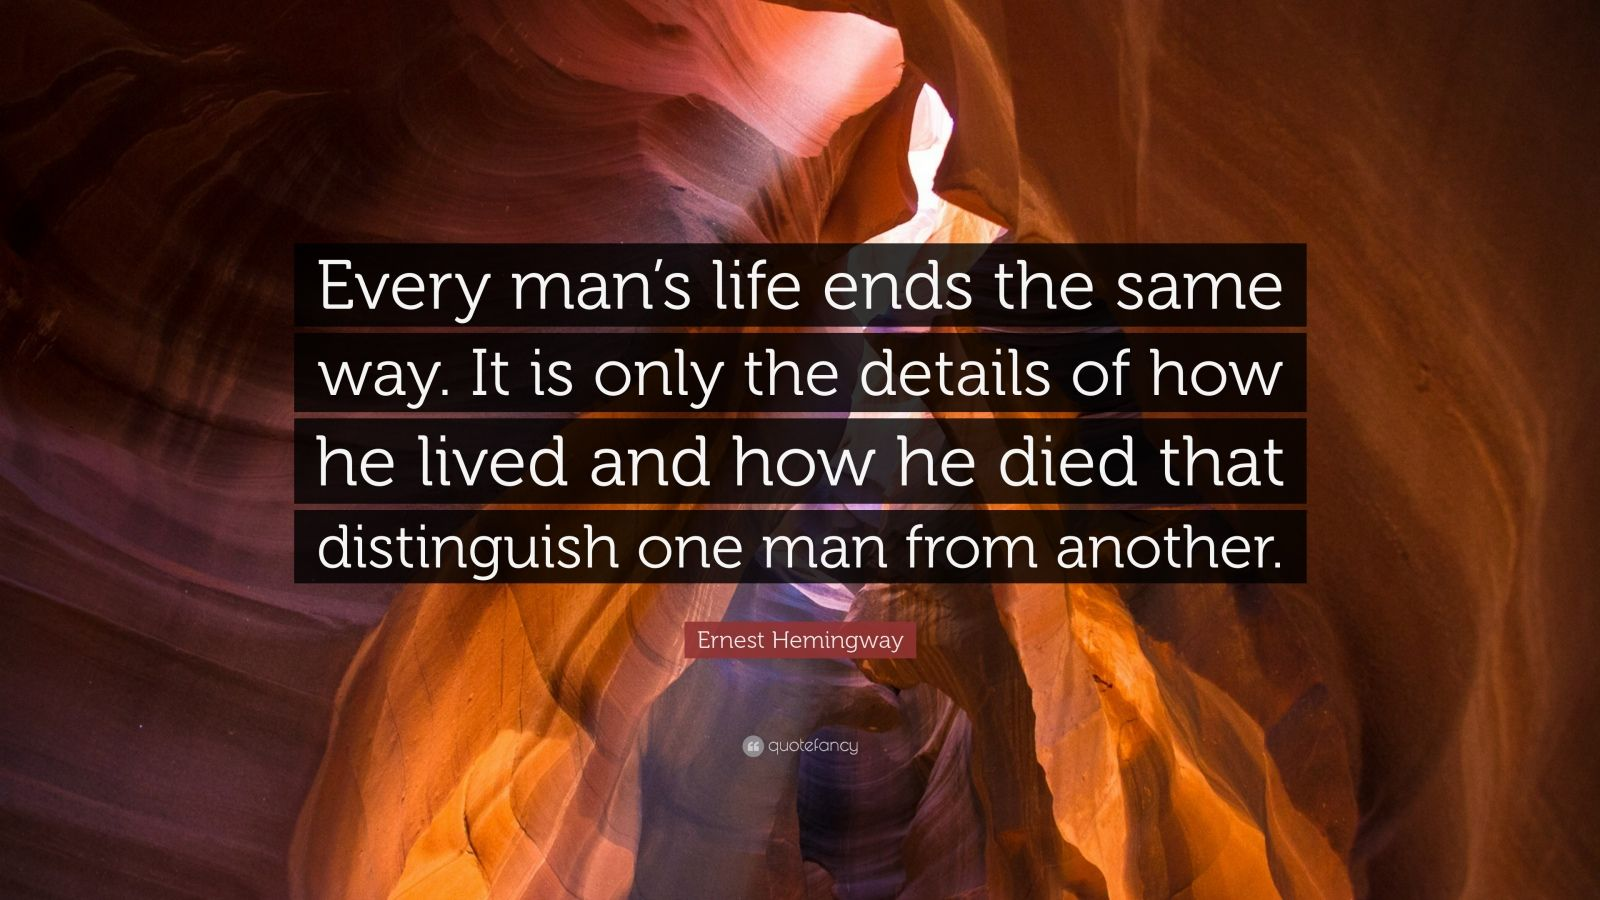 Inspiring Relationship Quotes Wallpaper Ernest Hemingway Quote Every Man S Life Ends The Same